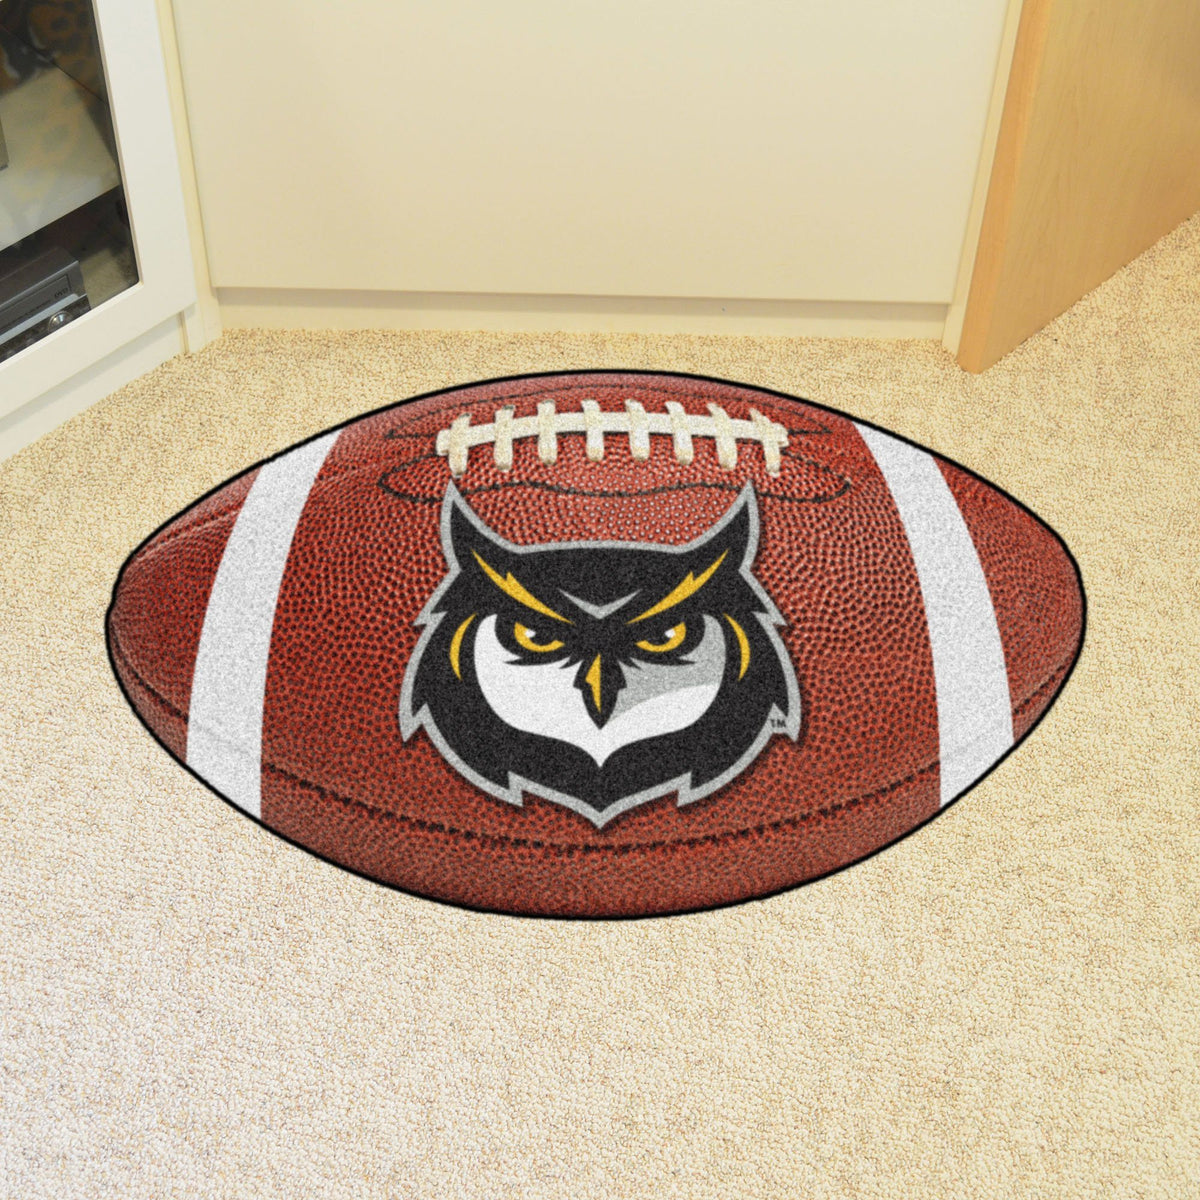 Collegiate - Football Mat: A - K Collegiate Mats, Rectangular Mats, Football Mat, Collegiate, Home Fan Mats Kennesaw State